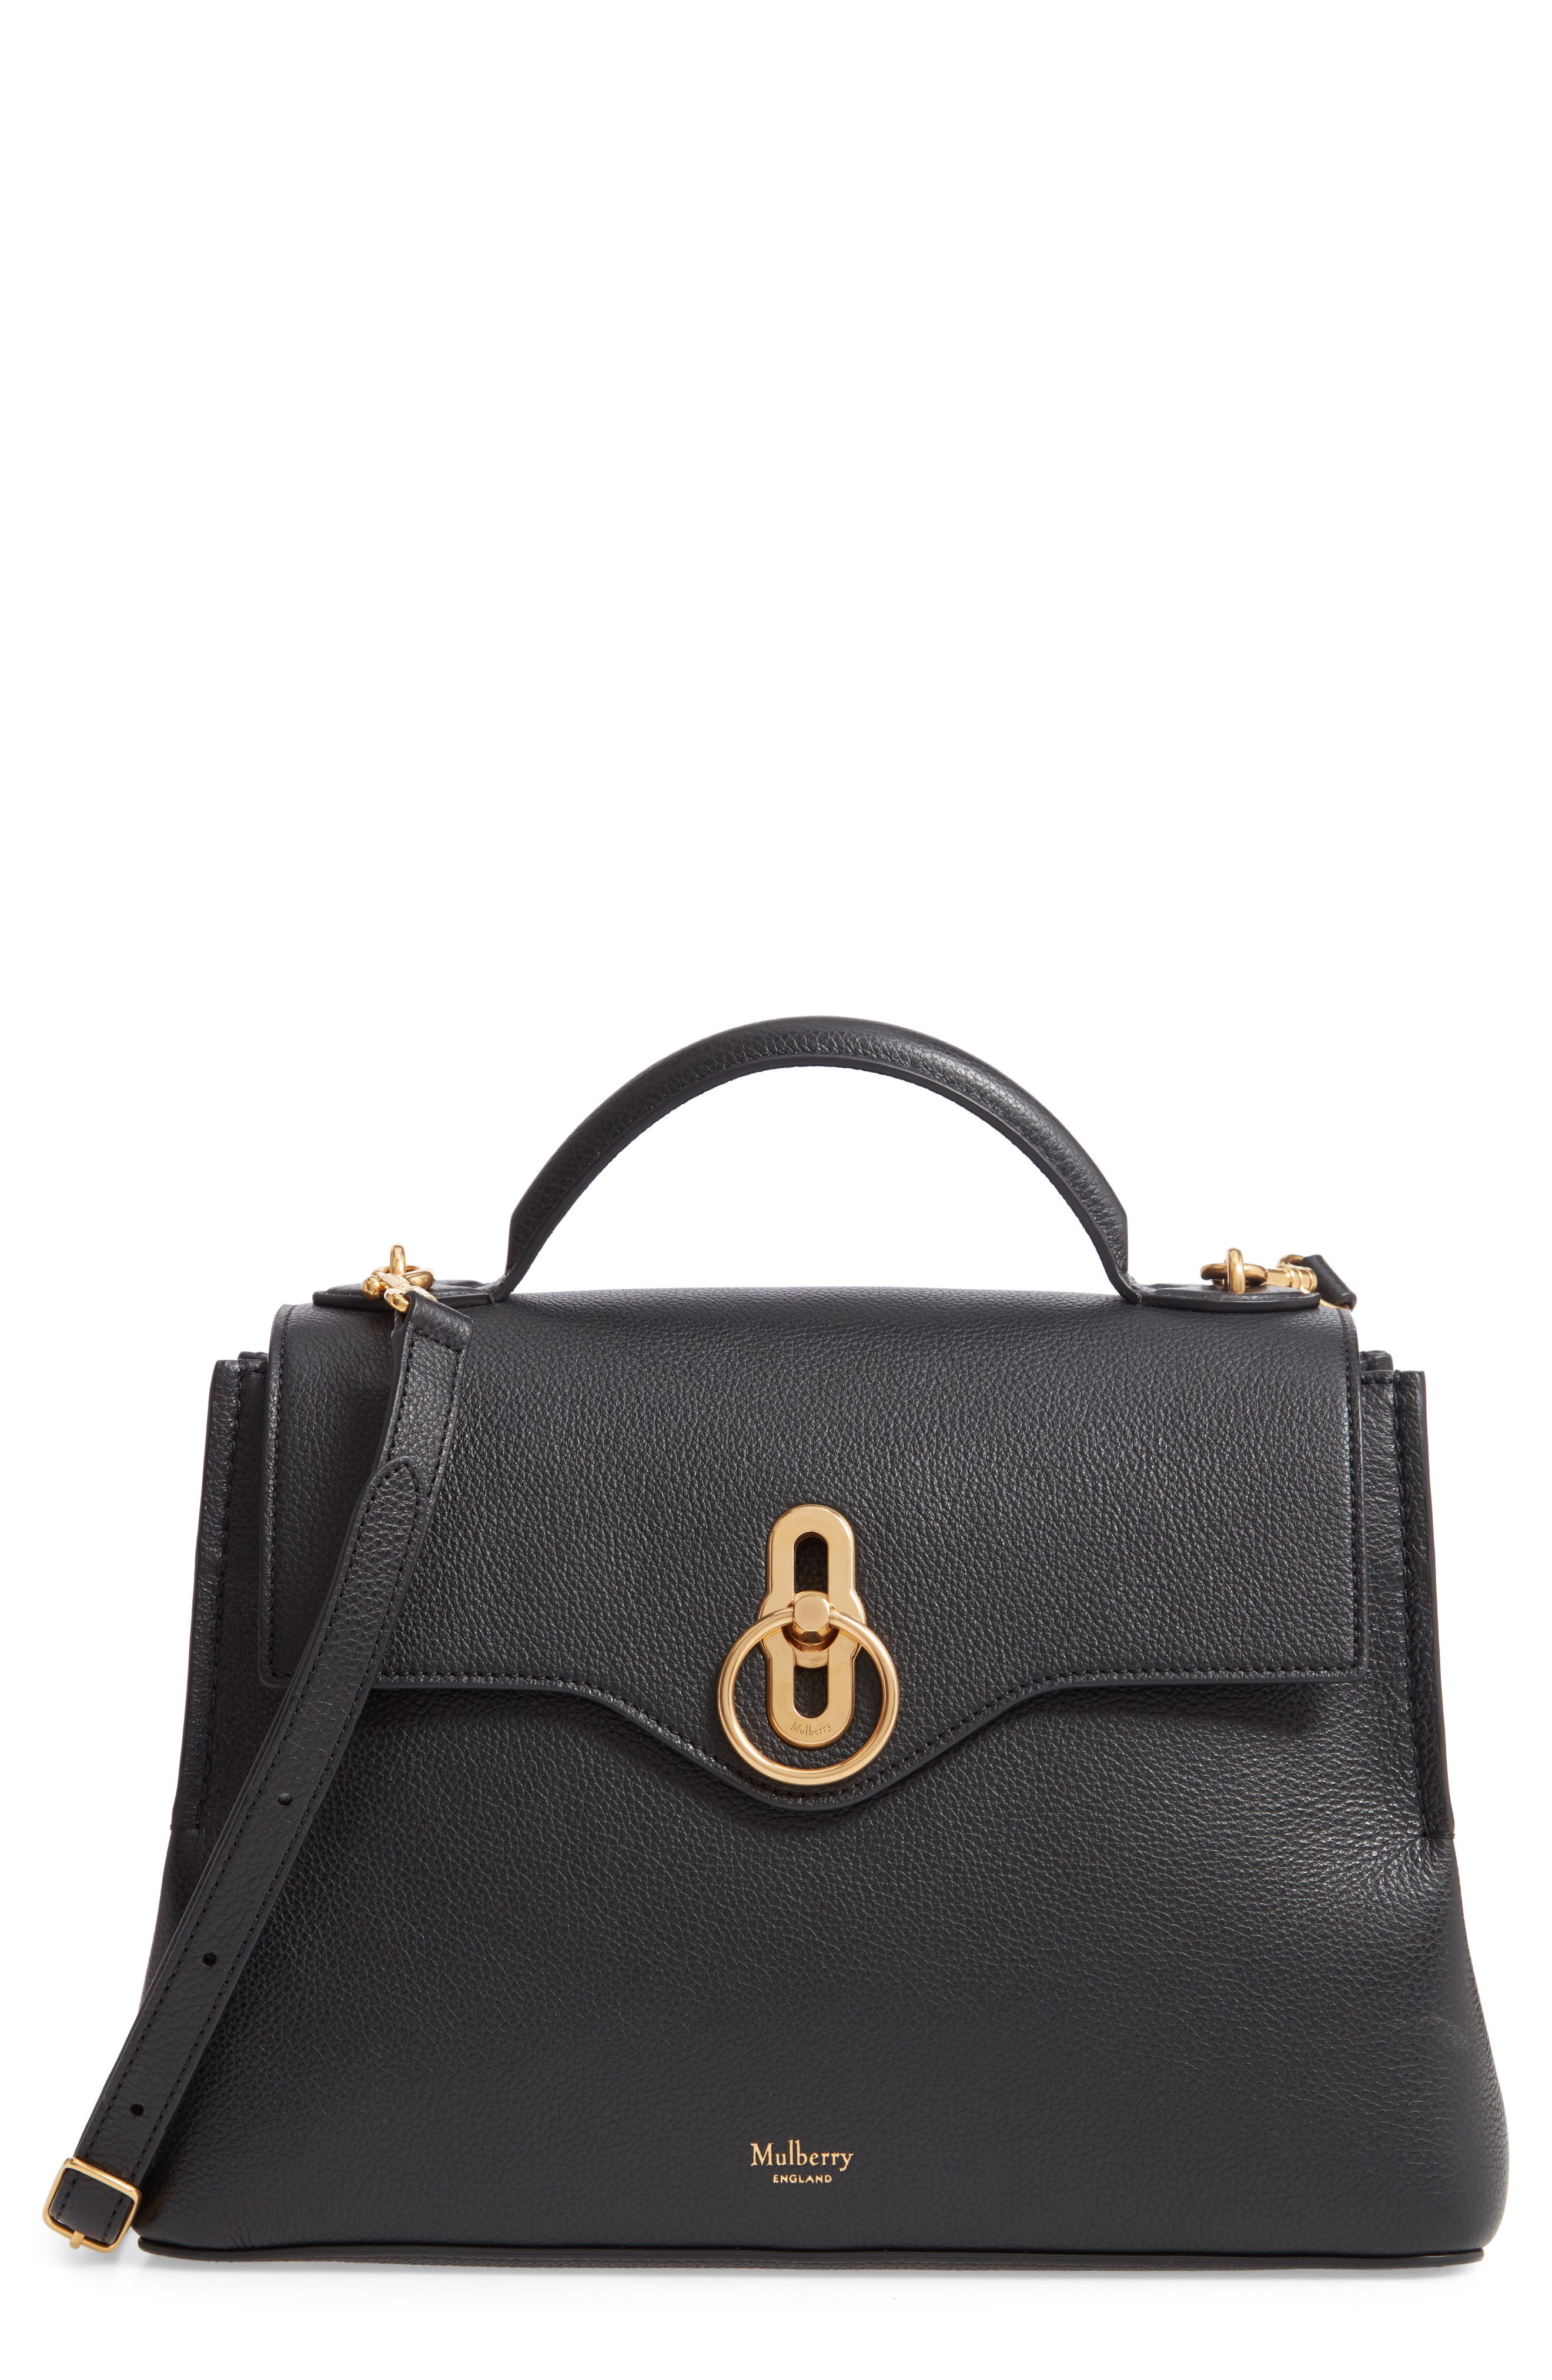 MULBERRY Small Seaton Leather Top Handle Satchel, Main, color, BLACK